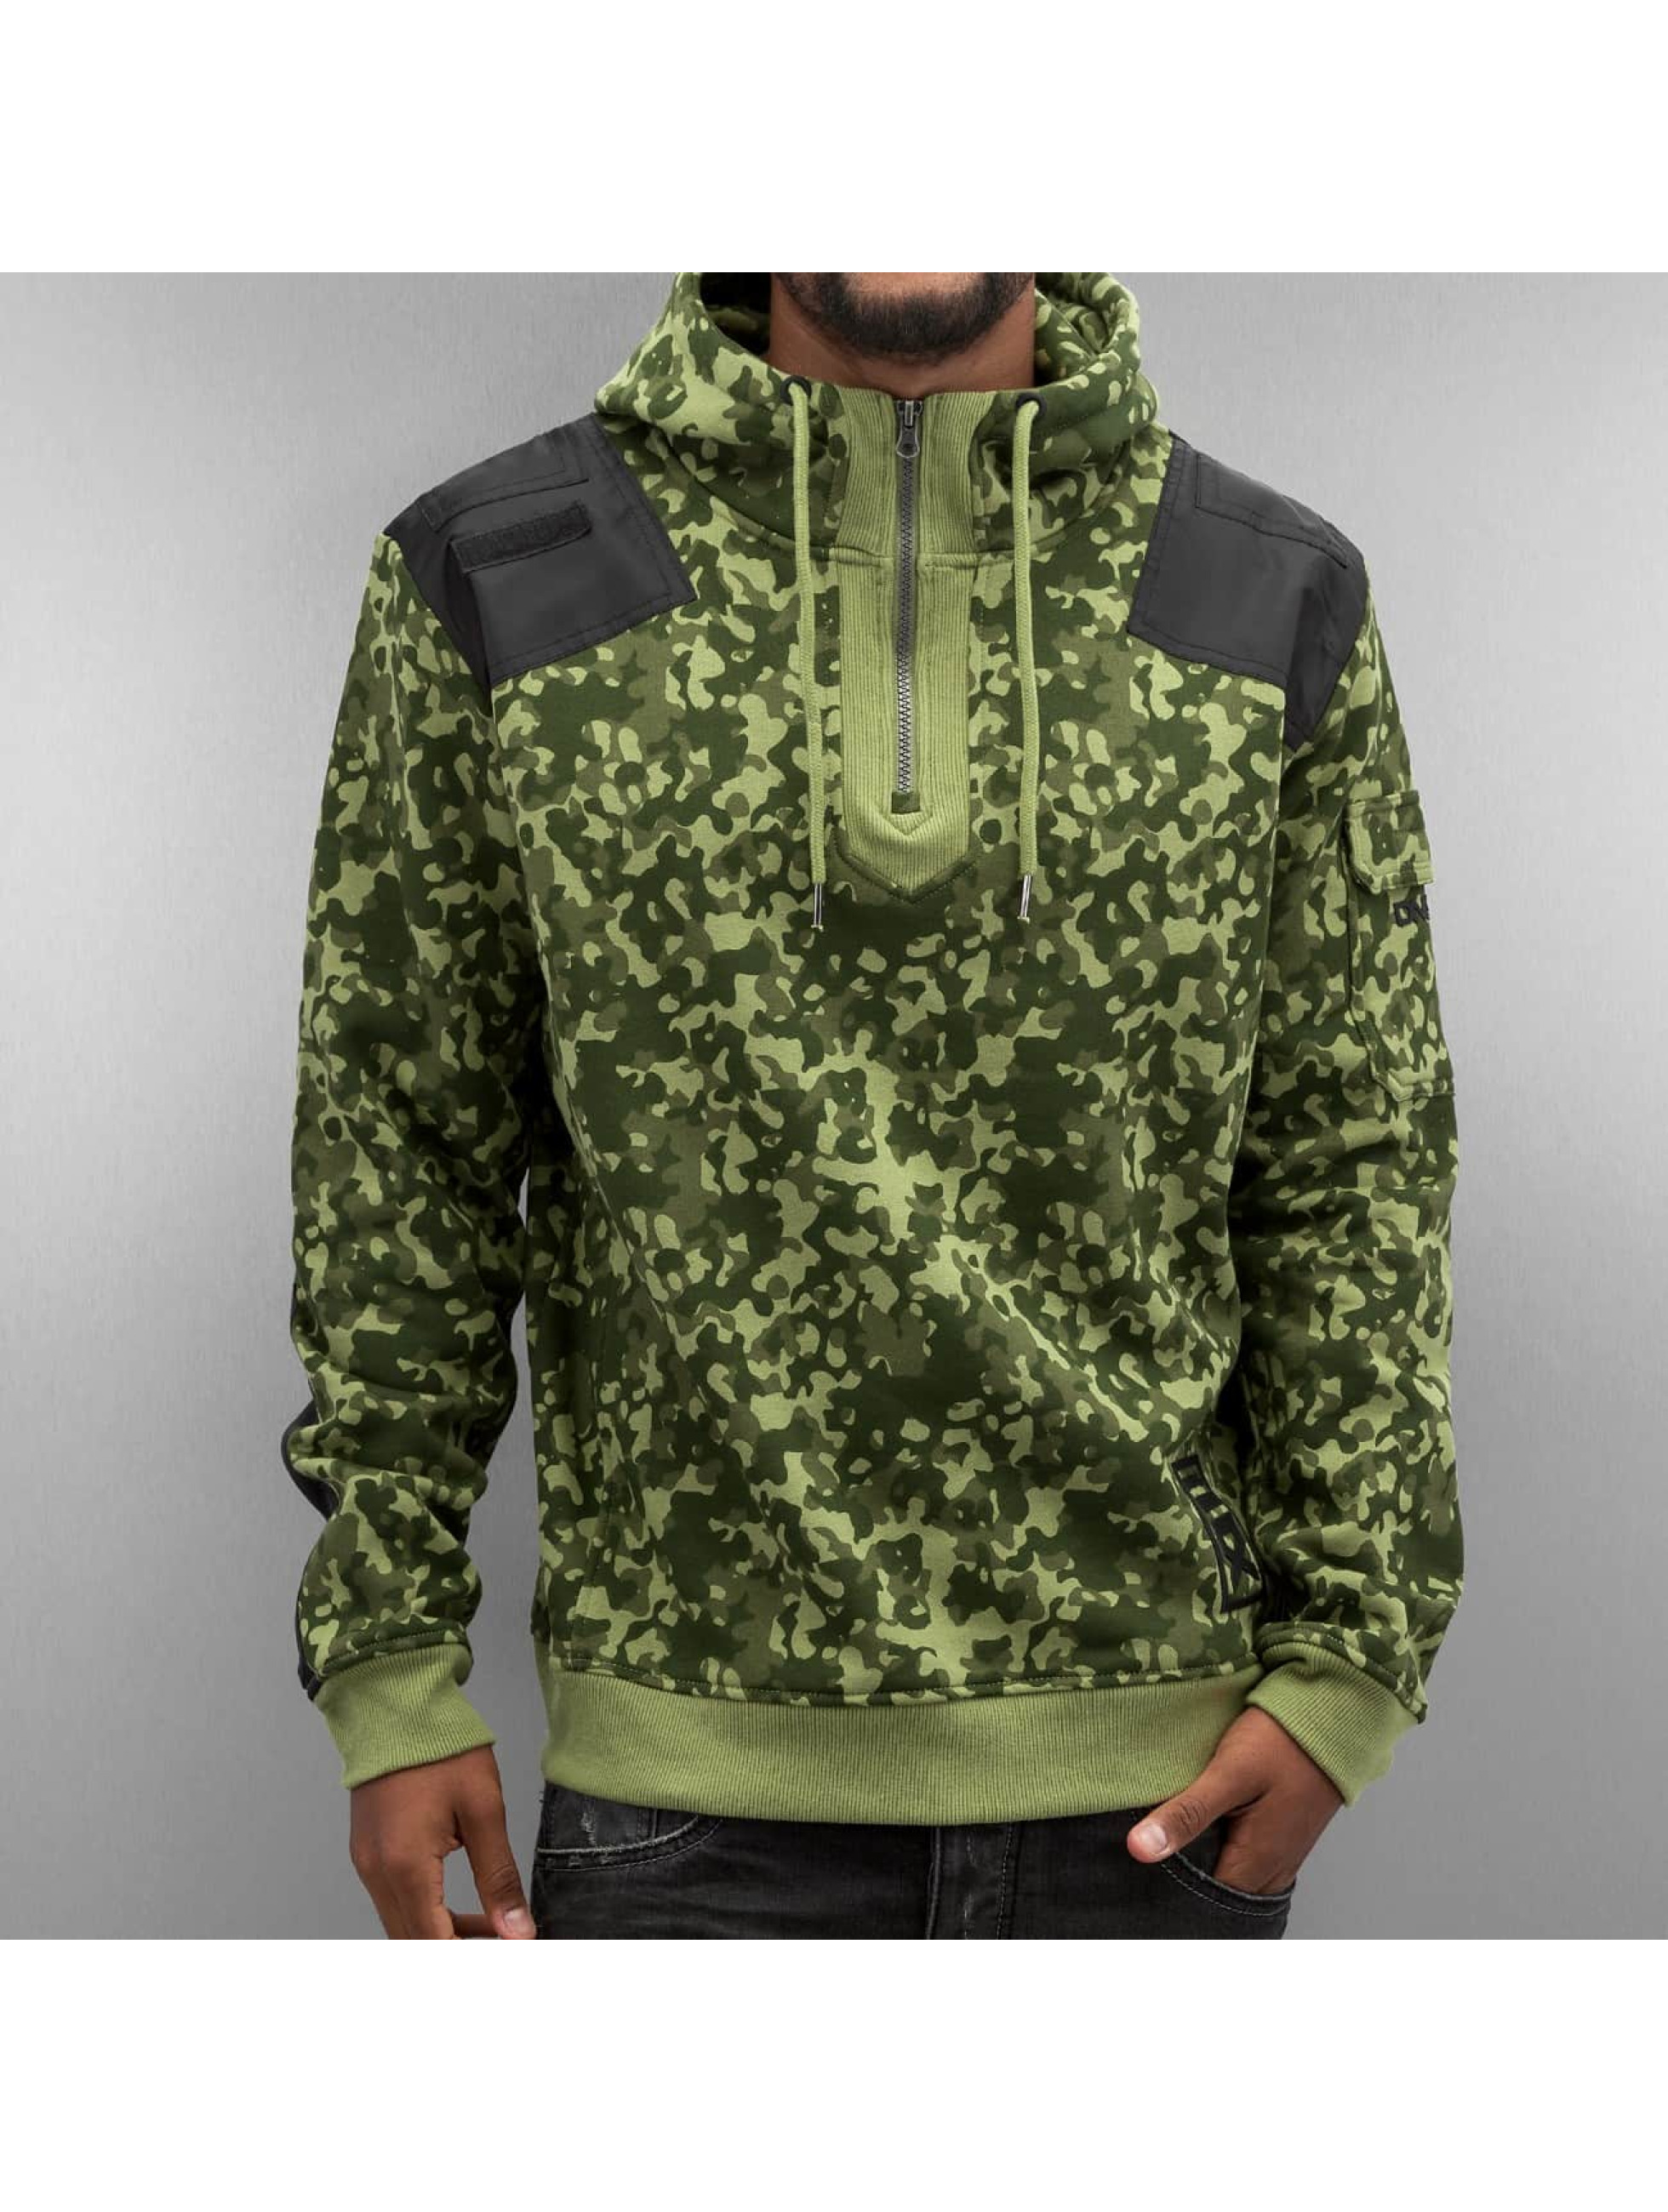 Hoody Necati in camouflage